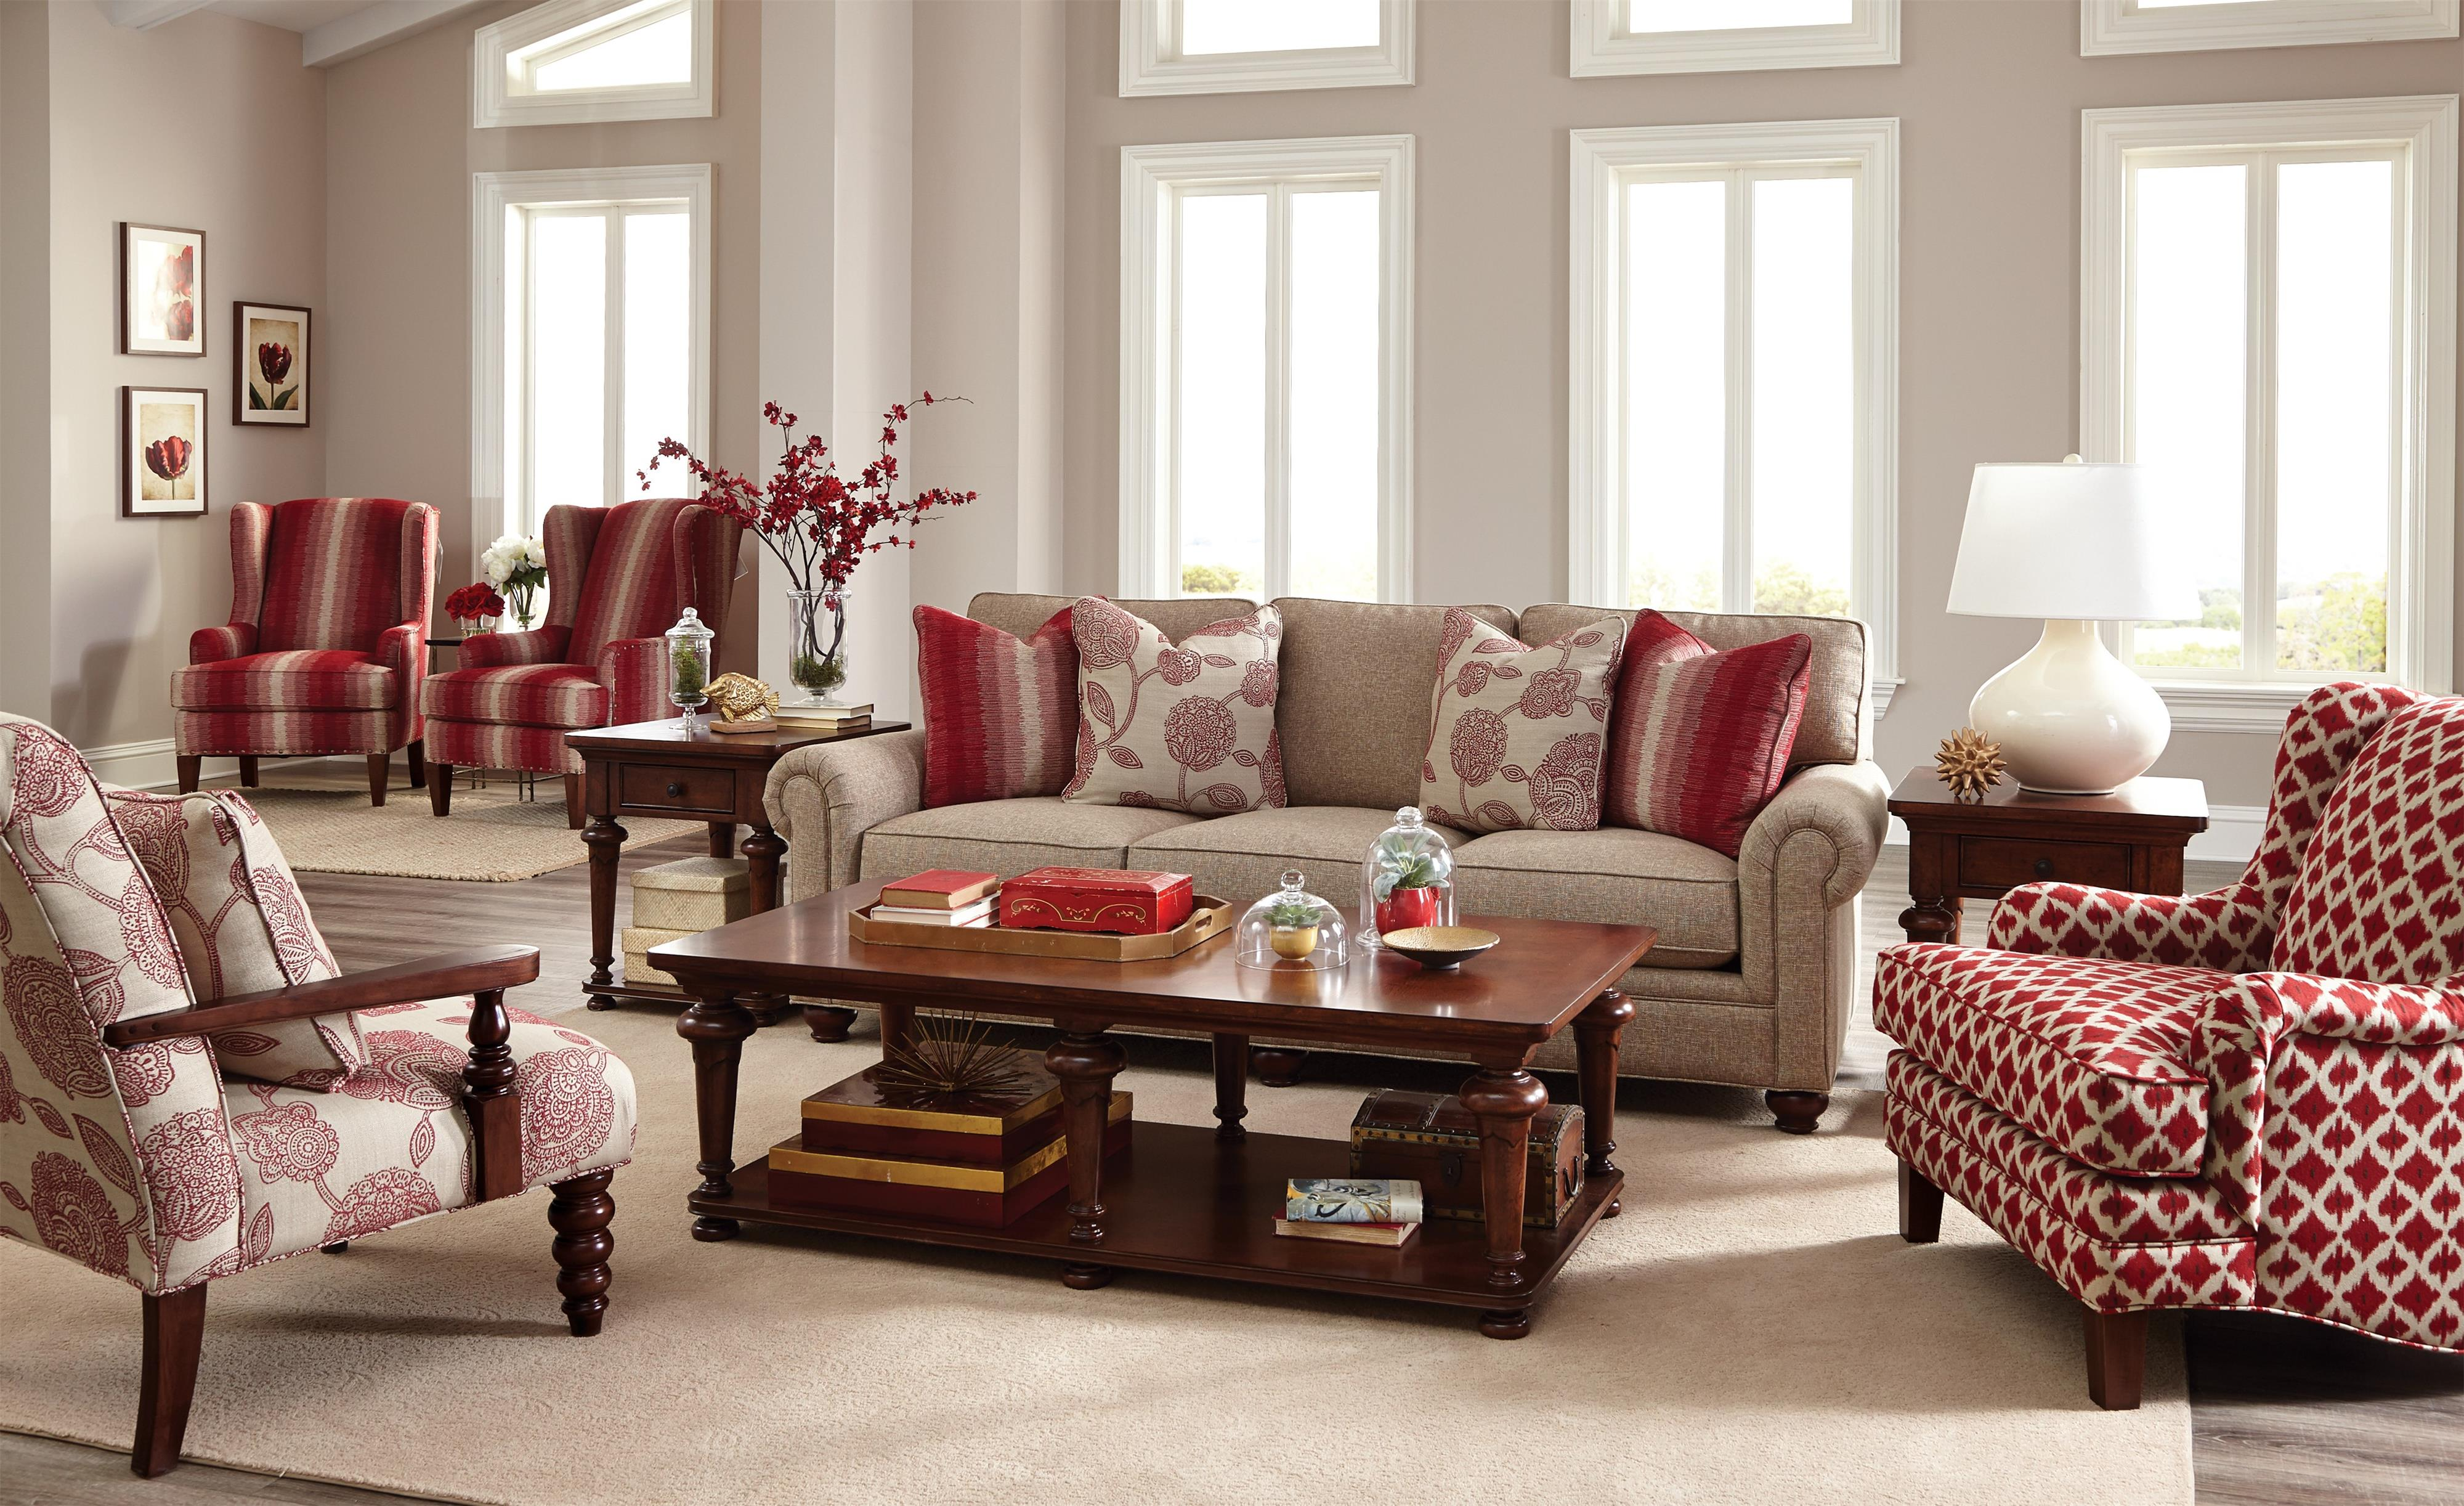 Captivating Paula Deen By Craftmaster P7552 Traditional Sofa With Roll Pleated Arms    Sprintz Furniture   Sofas Nashville, Franklin, And Greater Tennessee Part 27